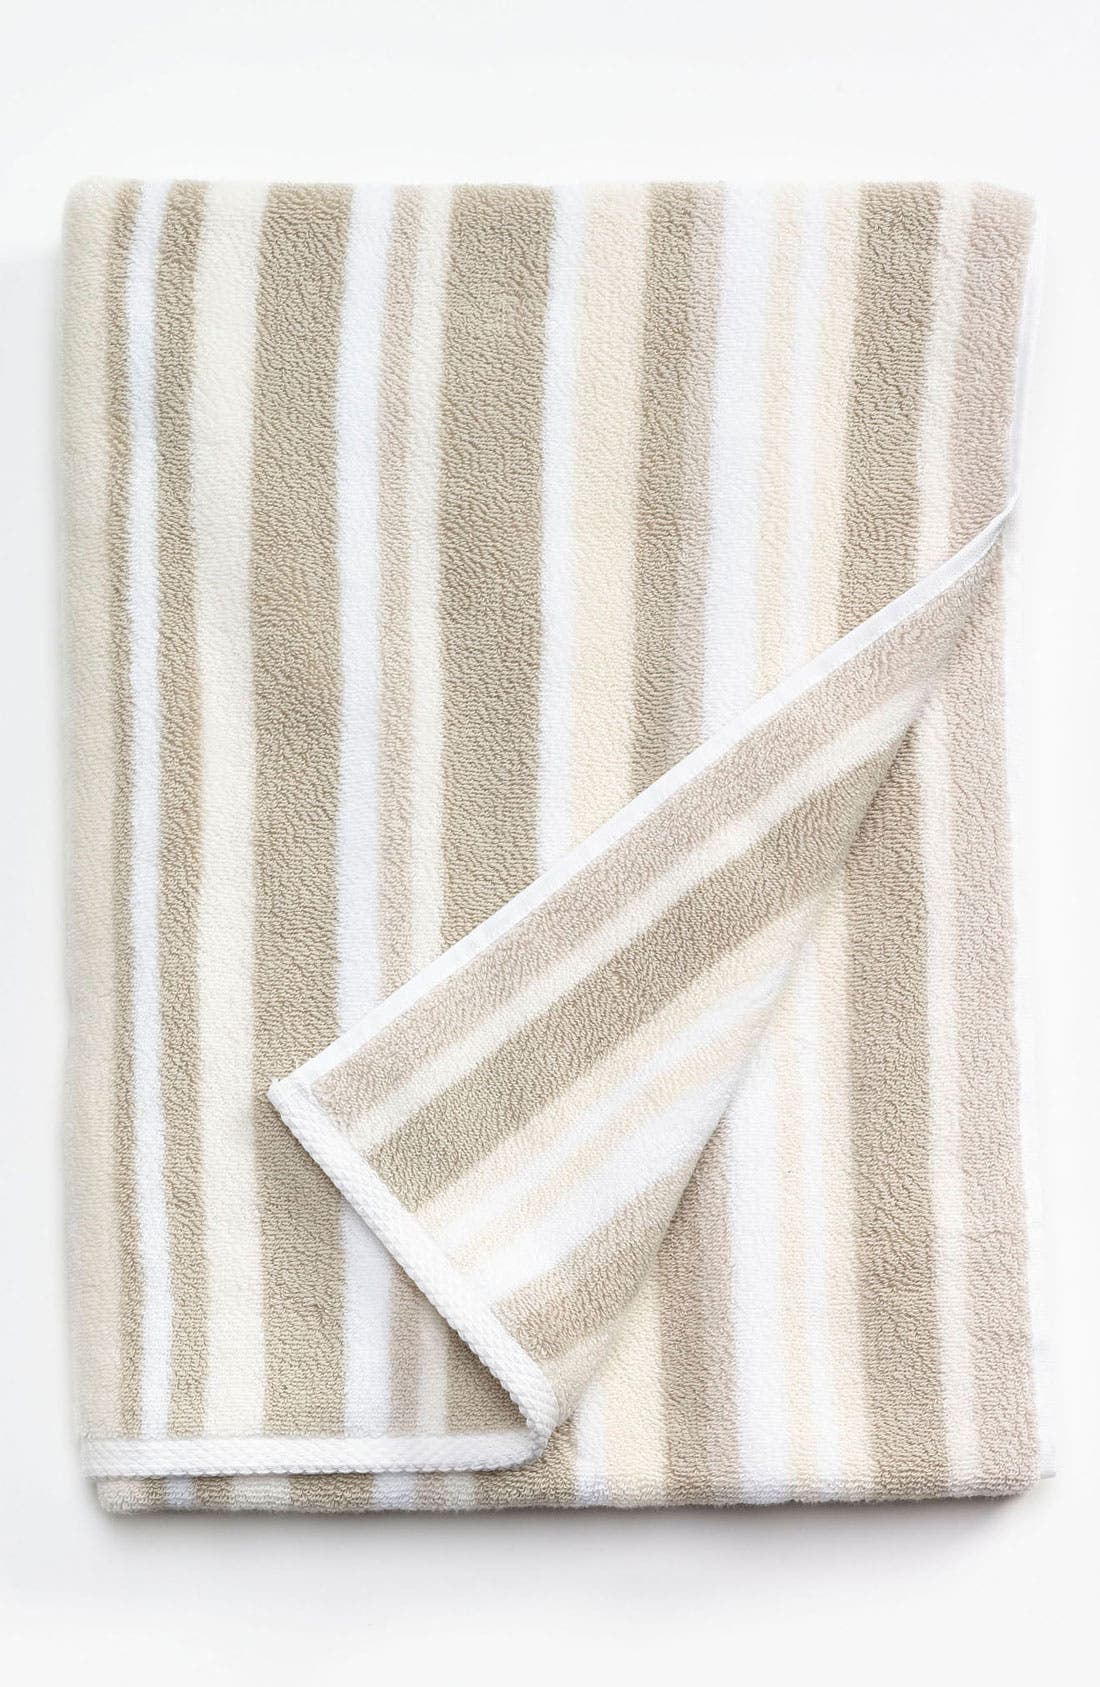 Alternate Image 1 Selected - Waterworks Studio 'Perennial' Combed Turkish Cotton Bath Towel (Online Only)